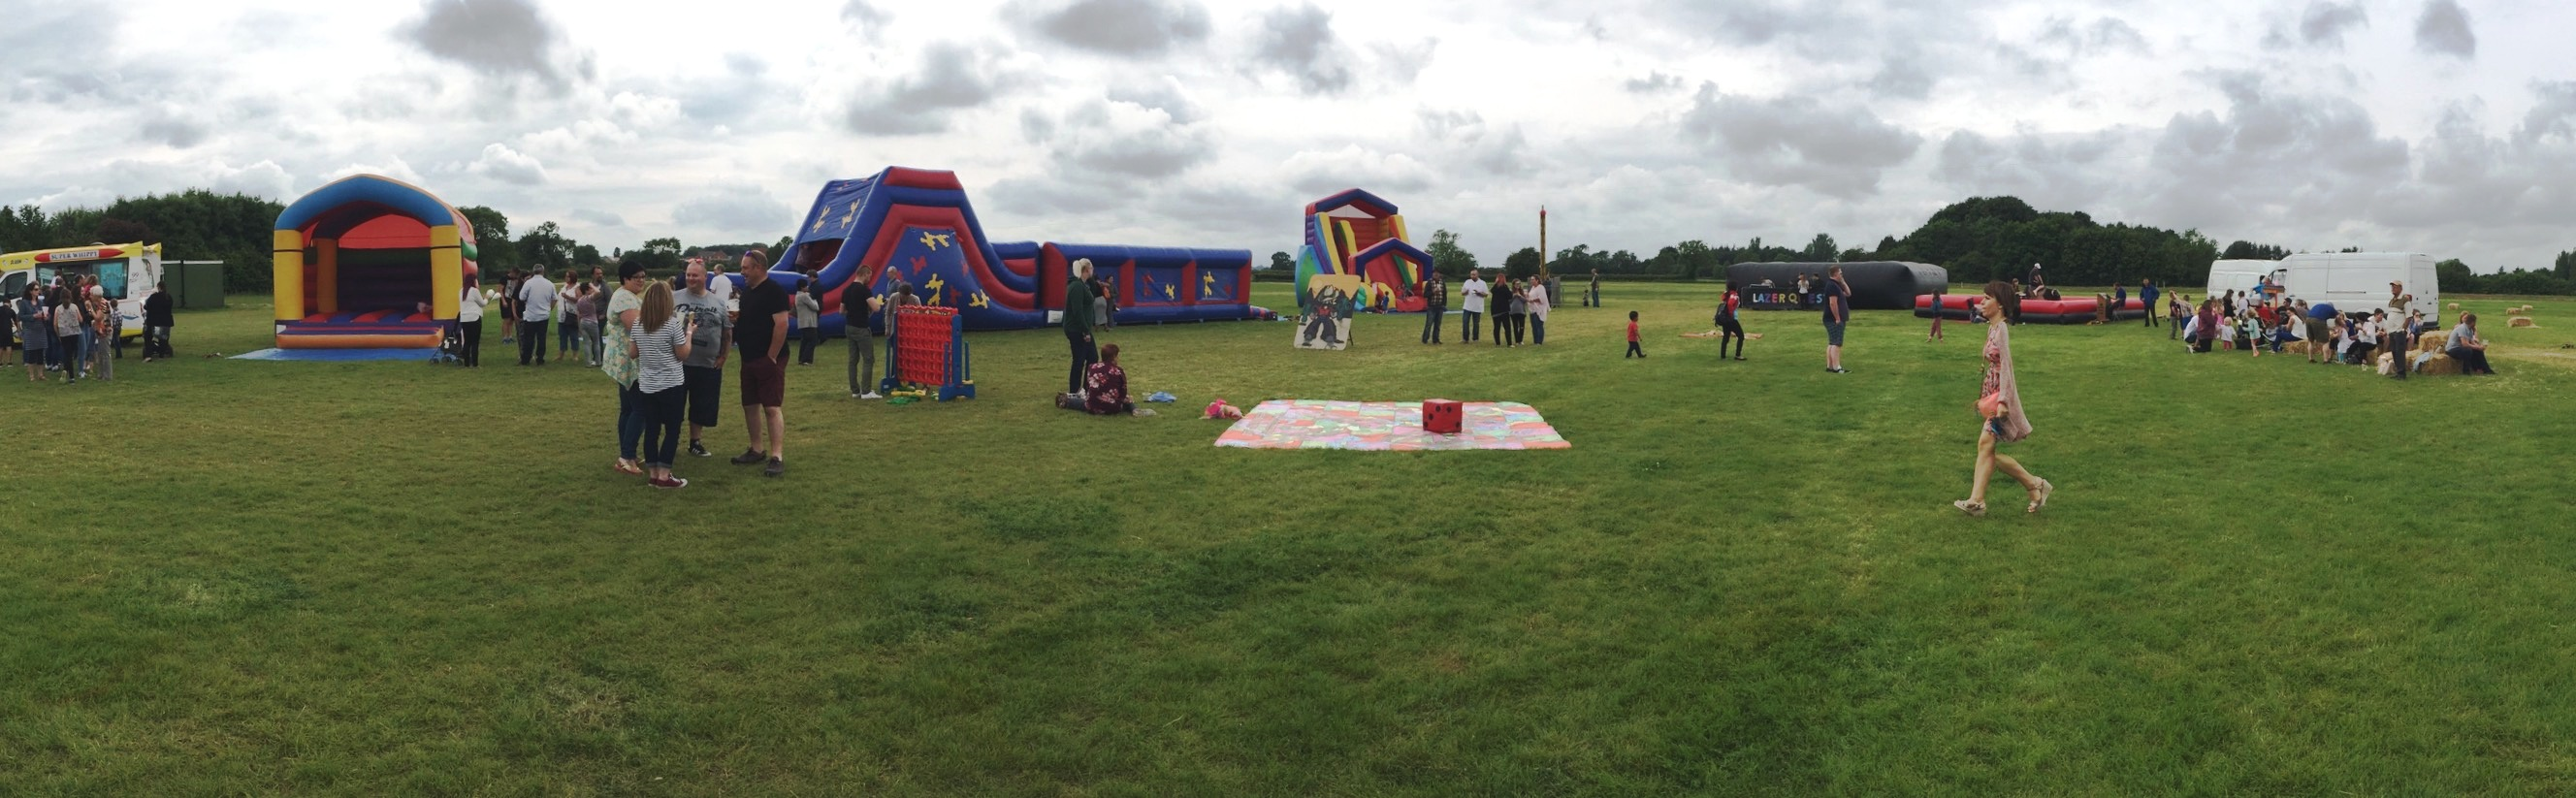 Rutland Plastics fun day events